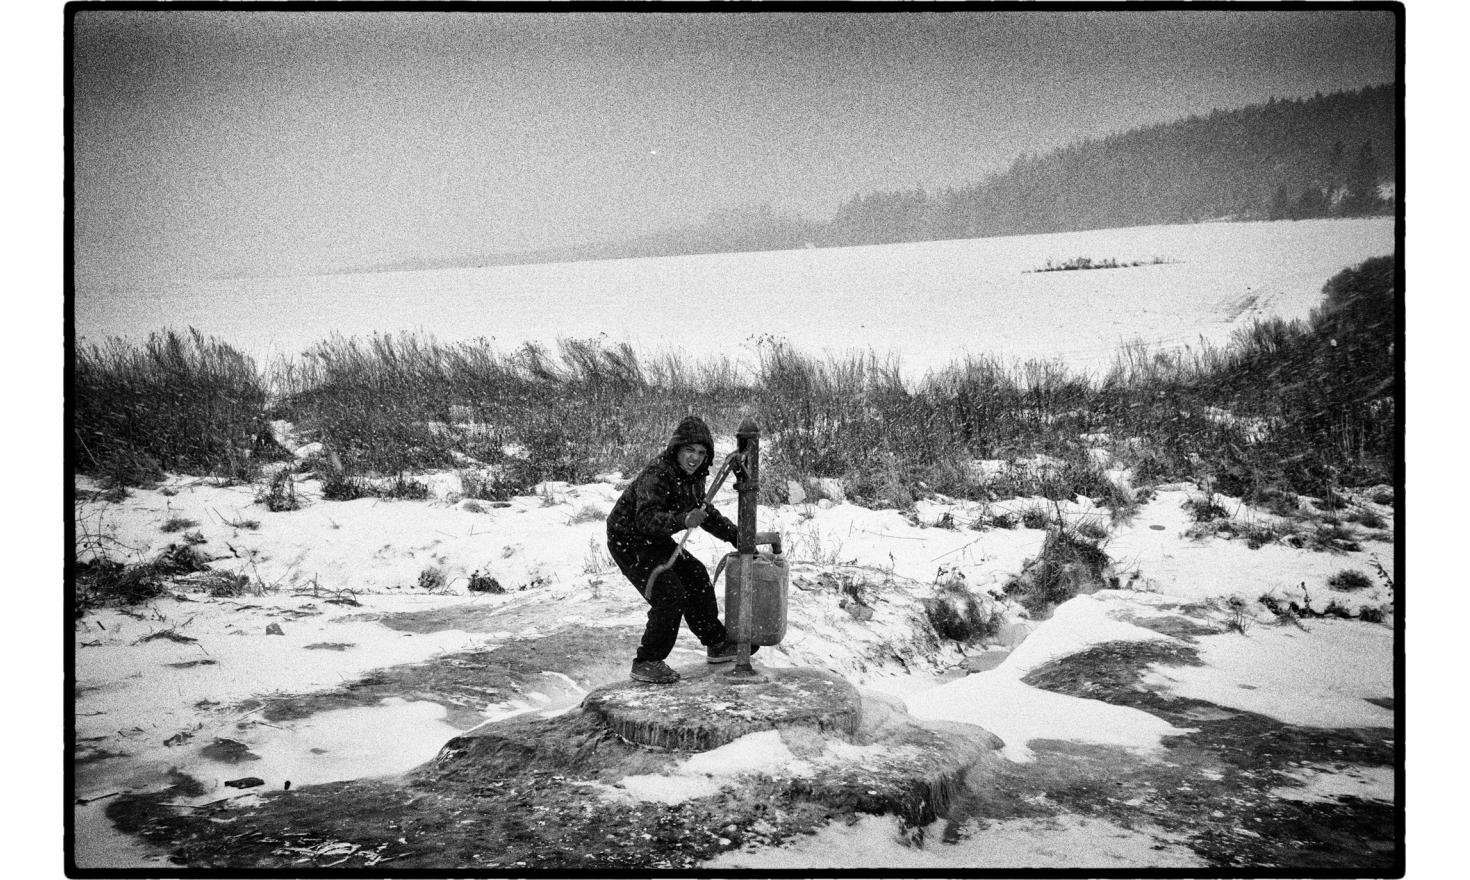 """Winter is very harsh at the""""Roma osada"""", roma district of Letanovce, located at 2 kilometers from the center, at the edge of the National park of the slovak paradise. Slovakia, November 2009."""